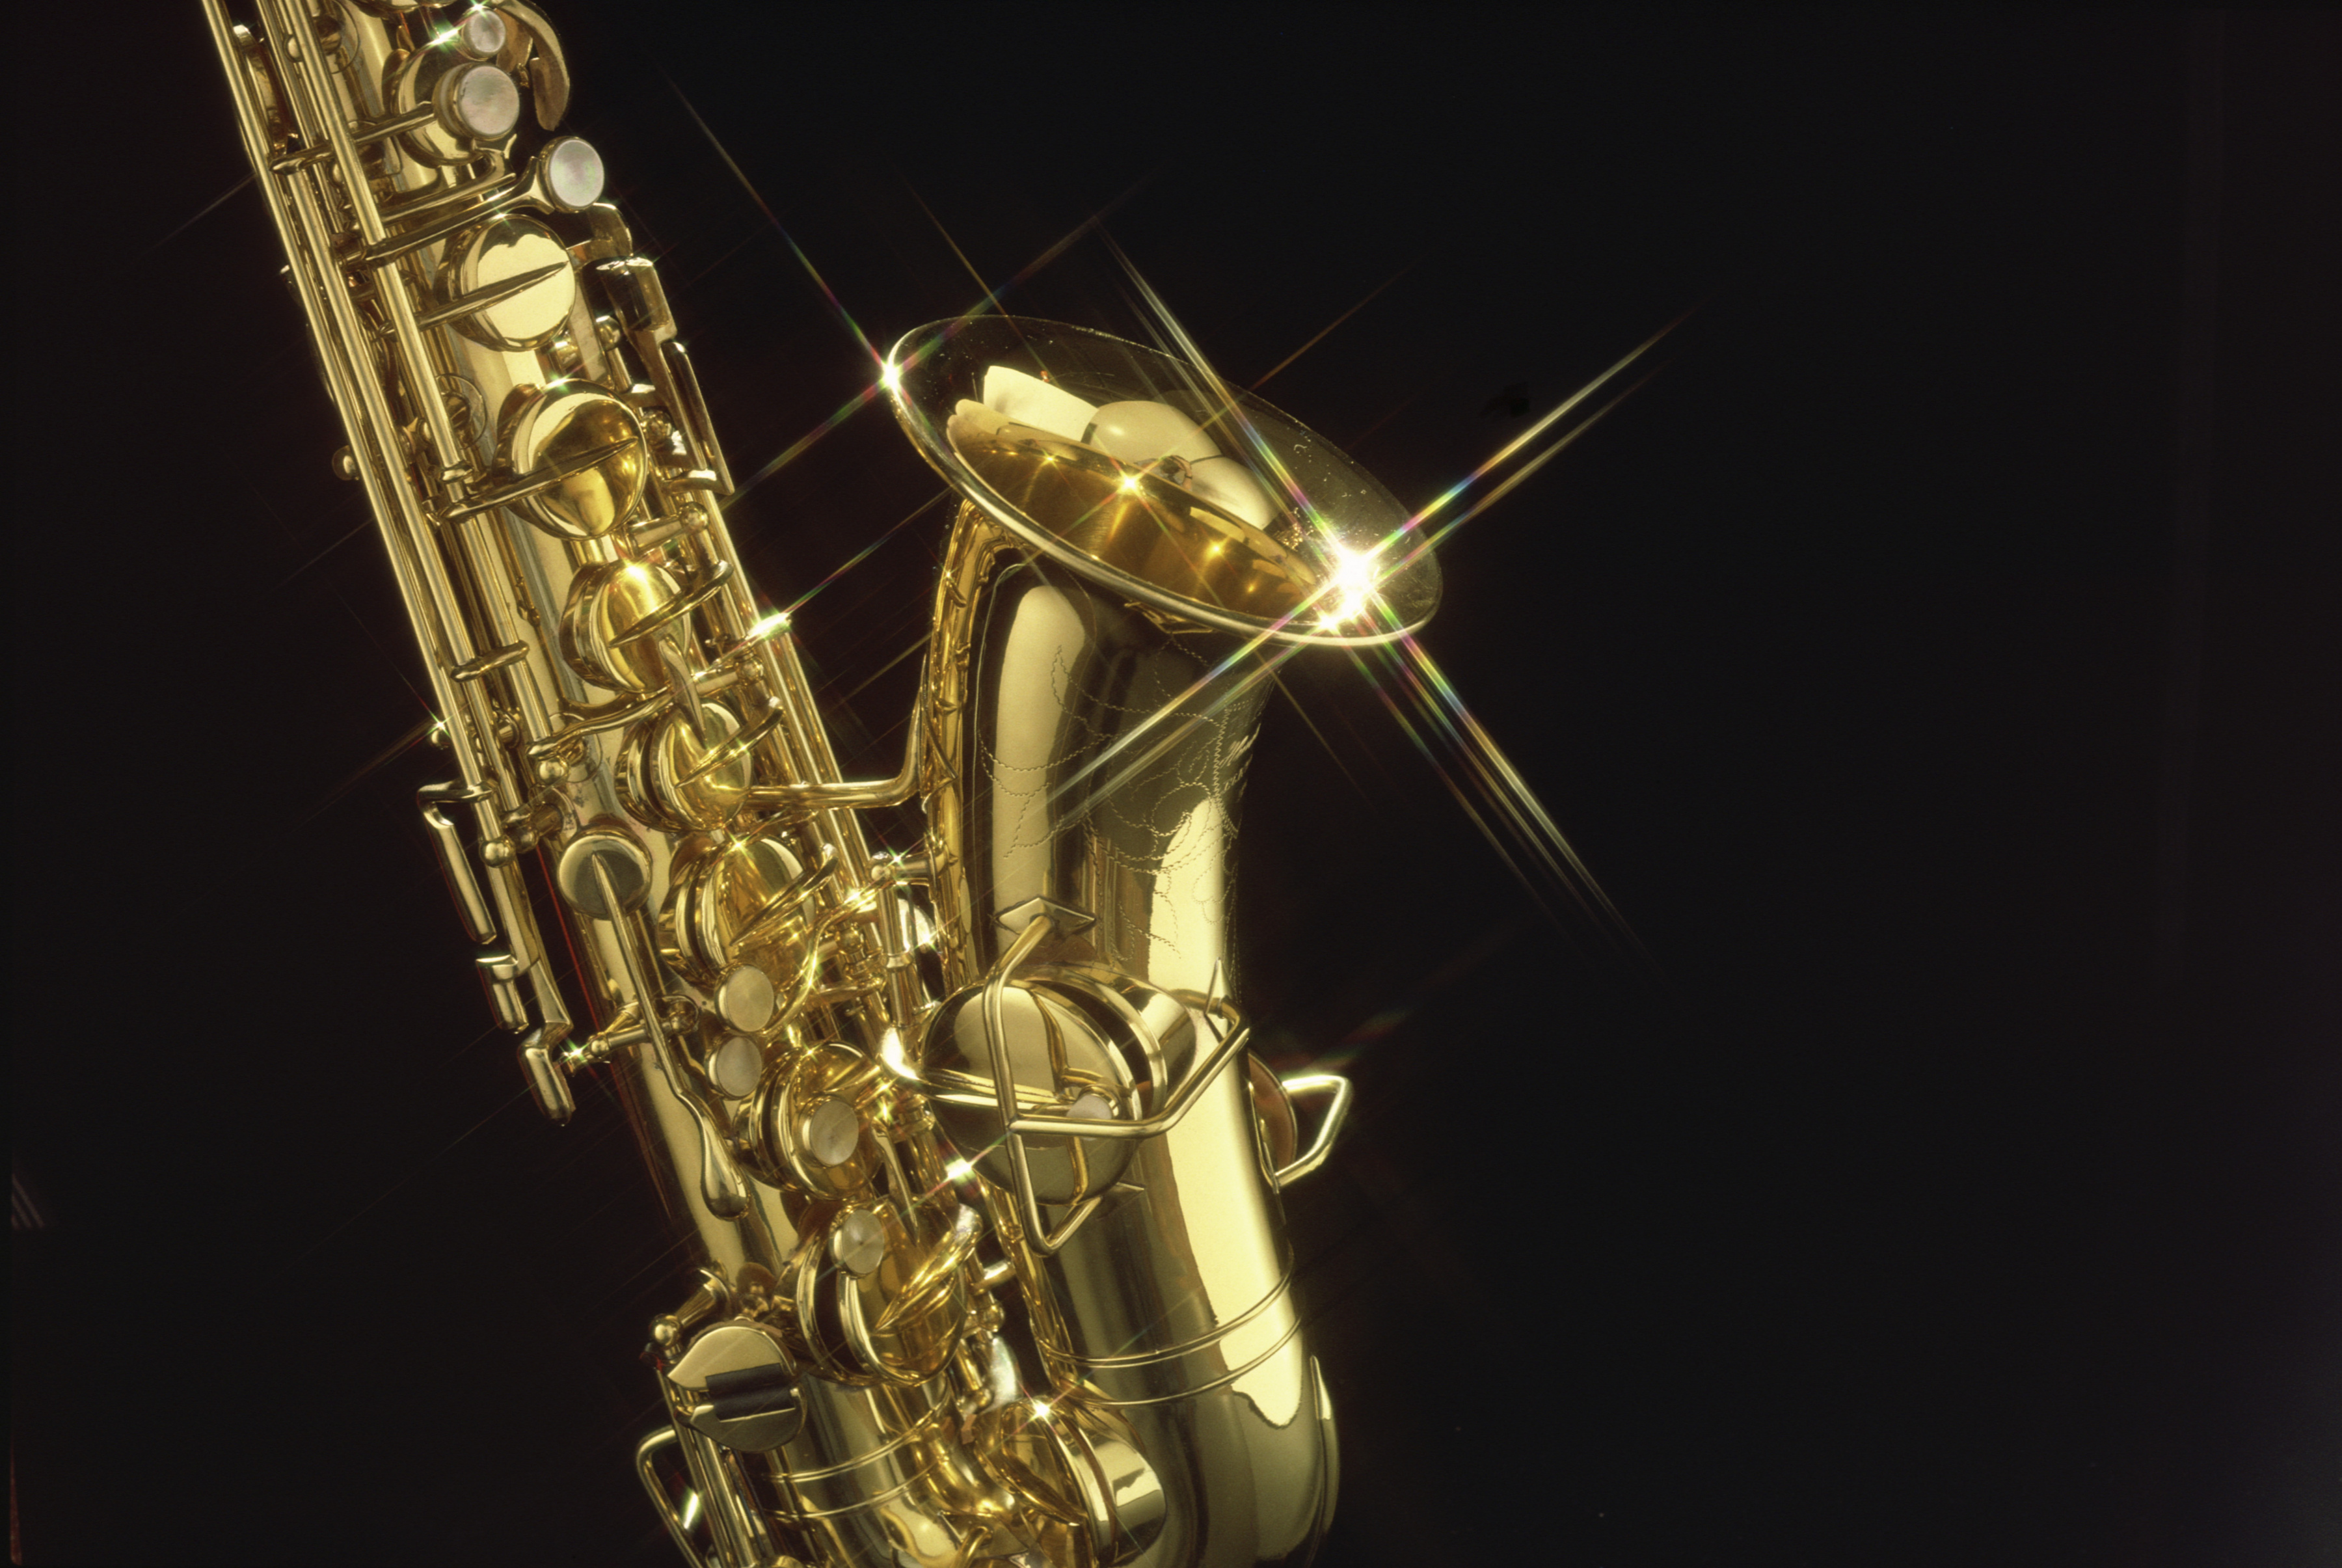 Fabulous How To Find The Serial Number On A Saxophone Our Pastimes Download Free Architecture Designs Scobabritishbridgeorg